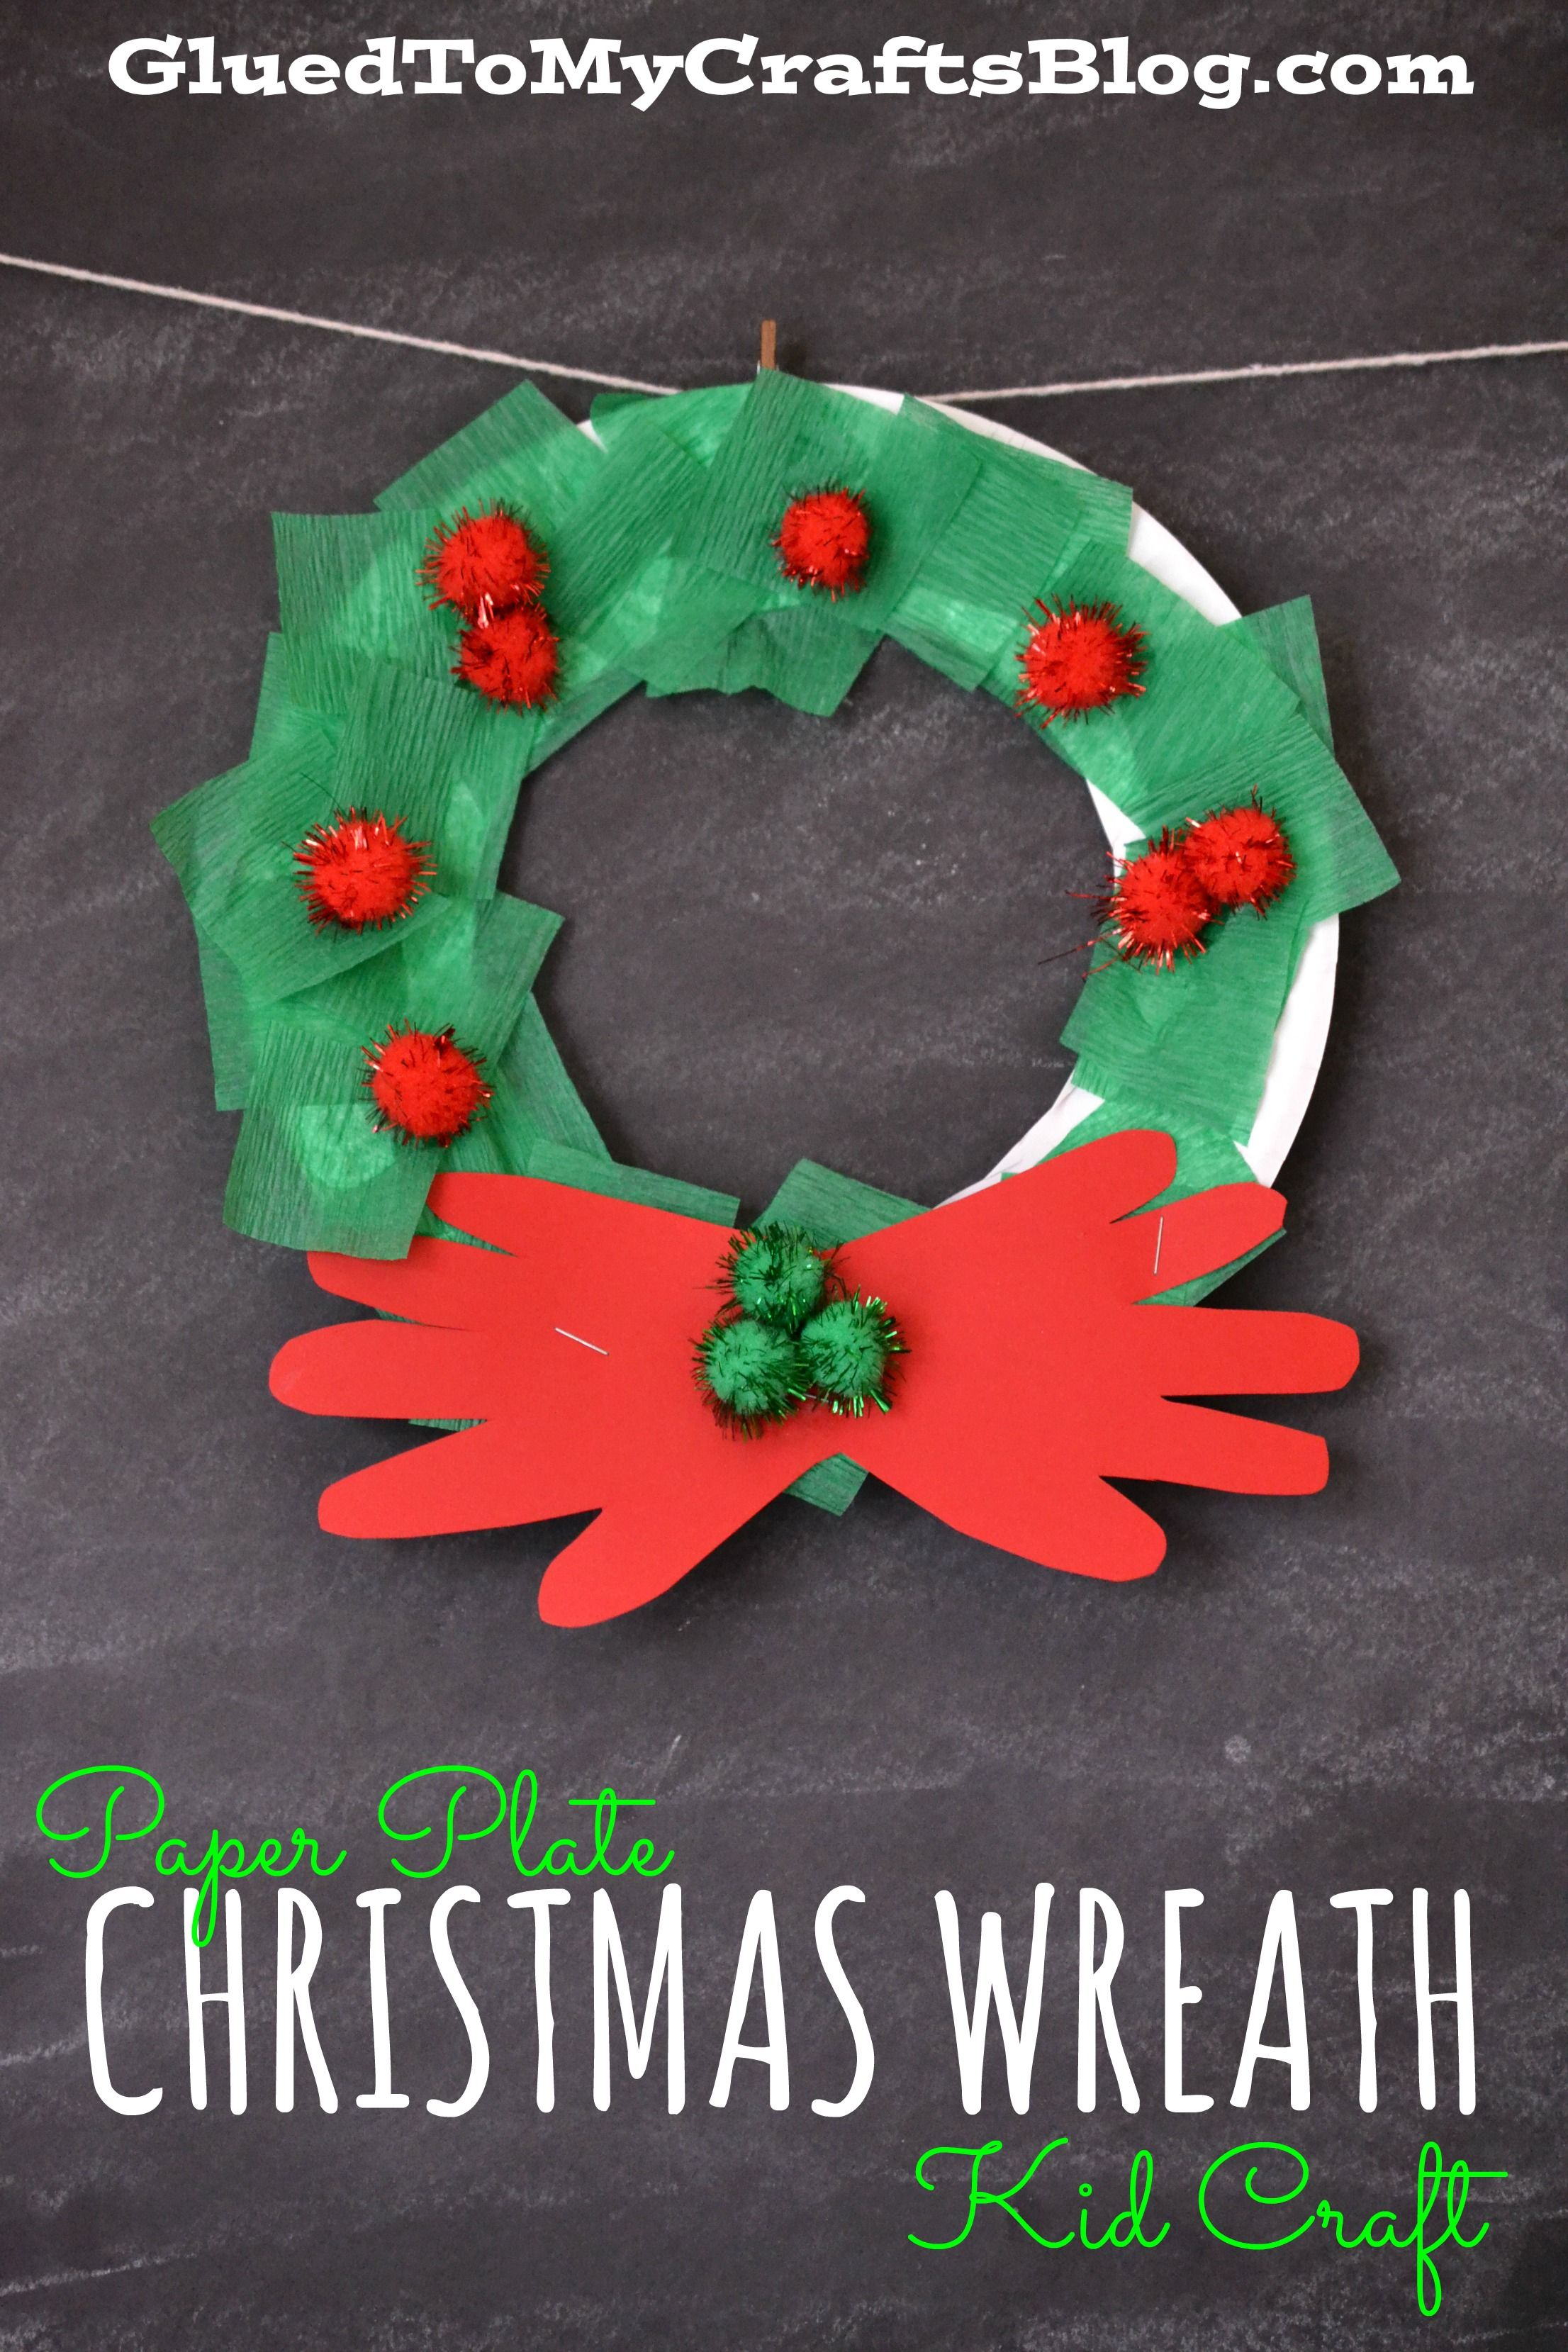 Paper Plate Christmas Wreath Kid Craft - the perfect kid friendly craft for the holiday seasoN! & Paper Plate Christmas Wreath Kid Craft | Pinterest | Wreaths ...